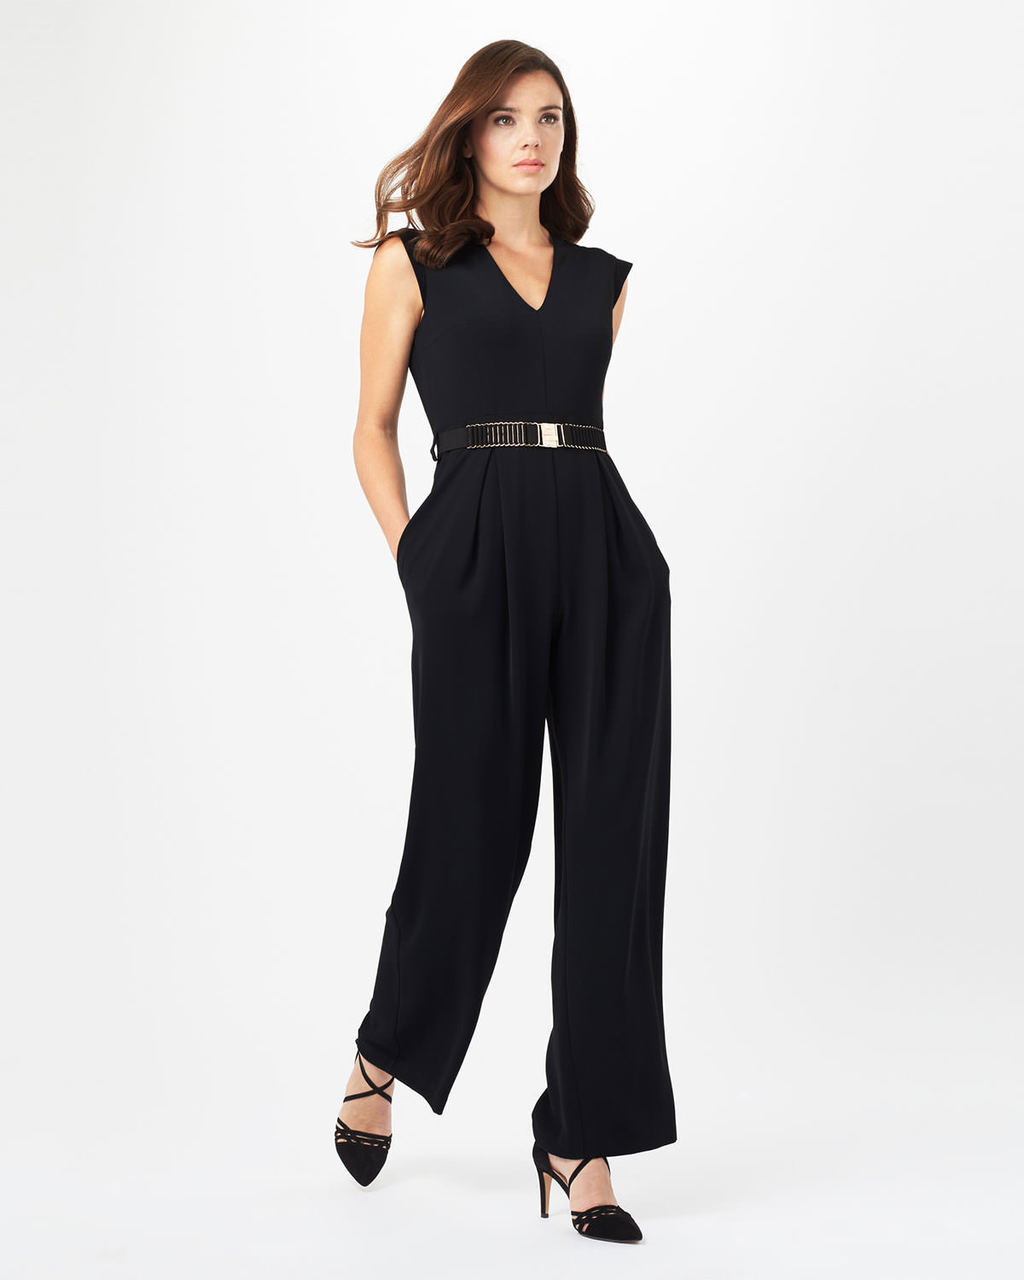 Adelaide Belted Jumpsuit - length: standard; neckline: low v-neck; fit: fitted at waist; pattern: plain; sleeve style: sleeveless; waist detail: belted waist/tie at waist/drawstring; predominant colour: black; occasions: evening, occasion; fibres: polyester/polyamide - 100%; sleeve length: sleeveless; texture group: crepes; style: jumpsuit; pattern type: fabric; season: s/s 2016; wardrobe: event